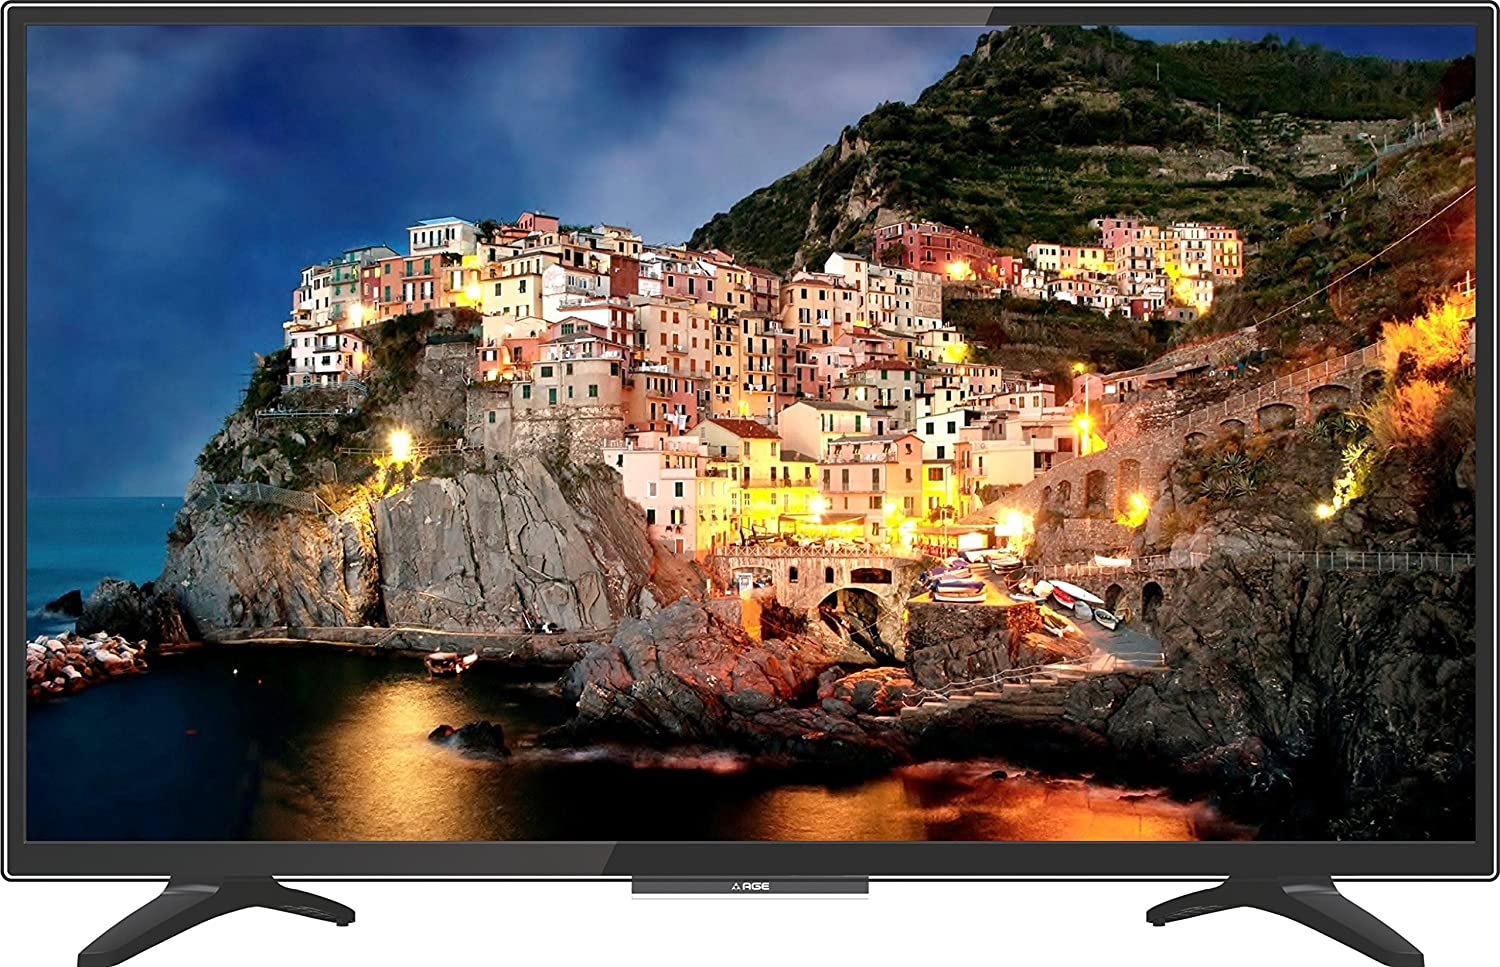 AGE Aaria 32 Inch Smart 4G Full HD LED TV Image